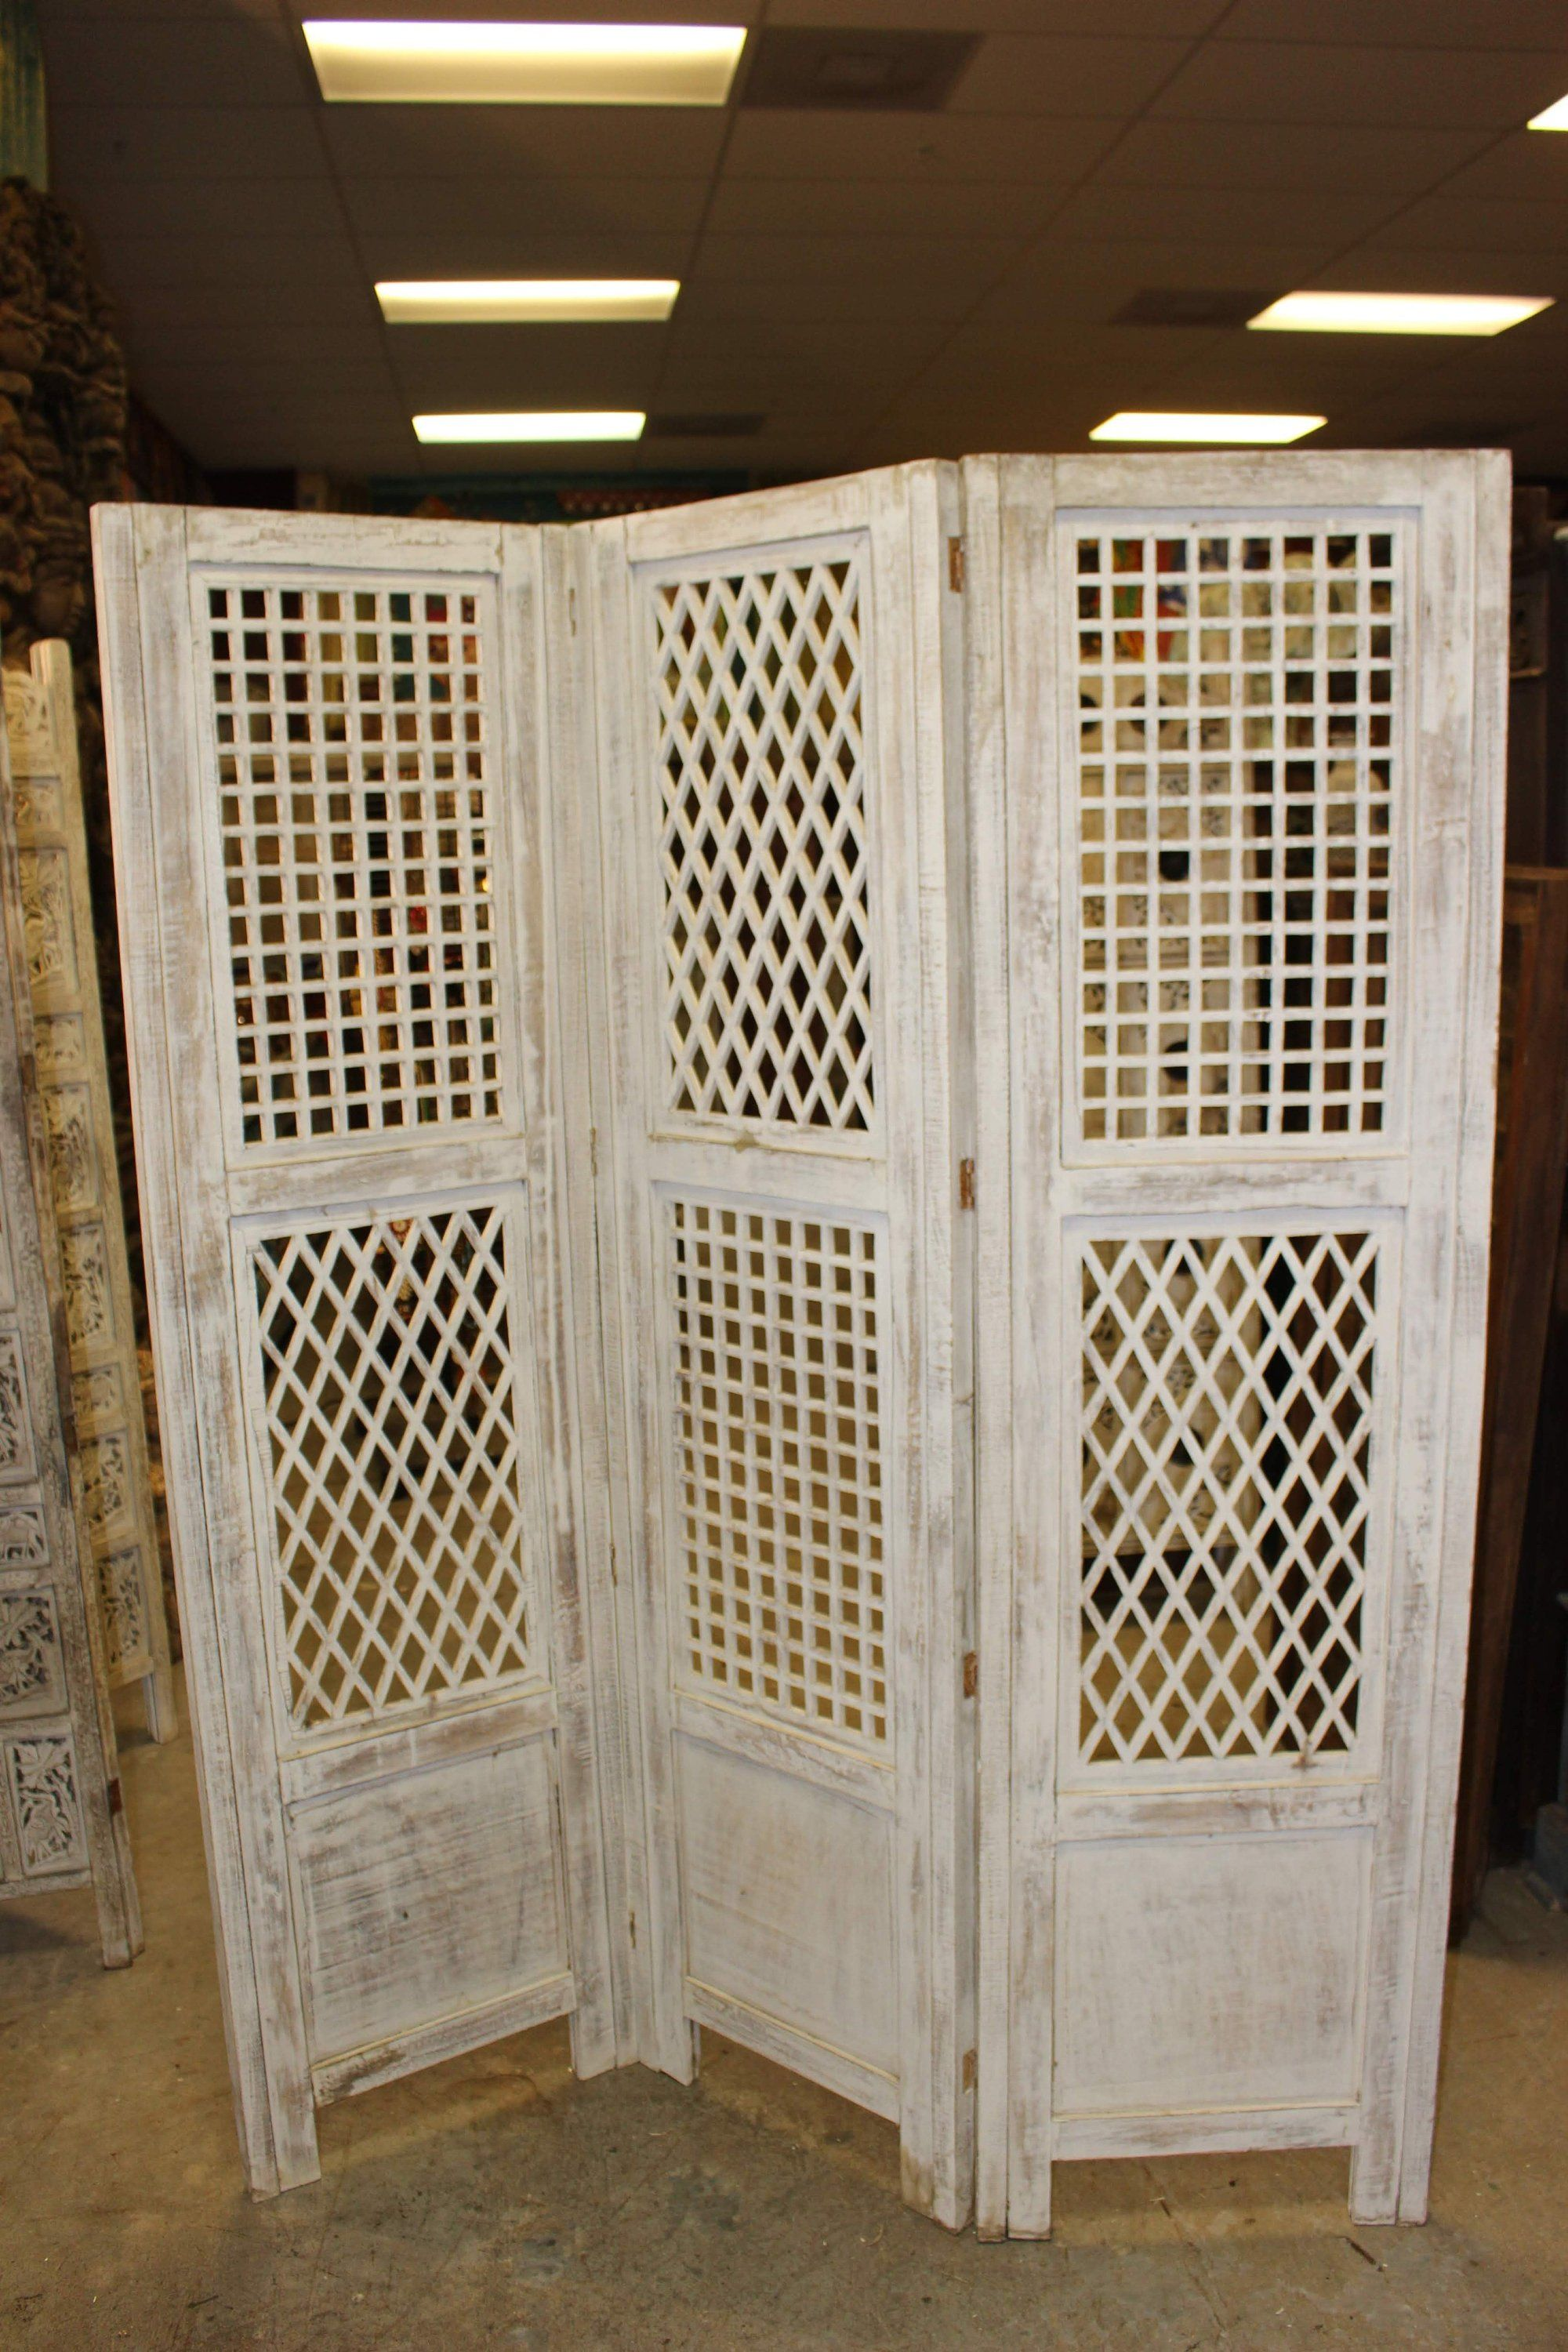 3 Panel Solid Wood Screen Room Divider Blinds Shades: Intricate Indian Vintage Solid Sheesham (Indian Rosewood